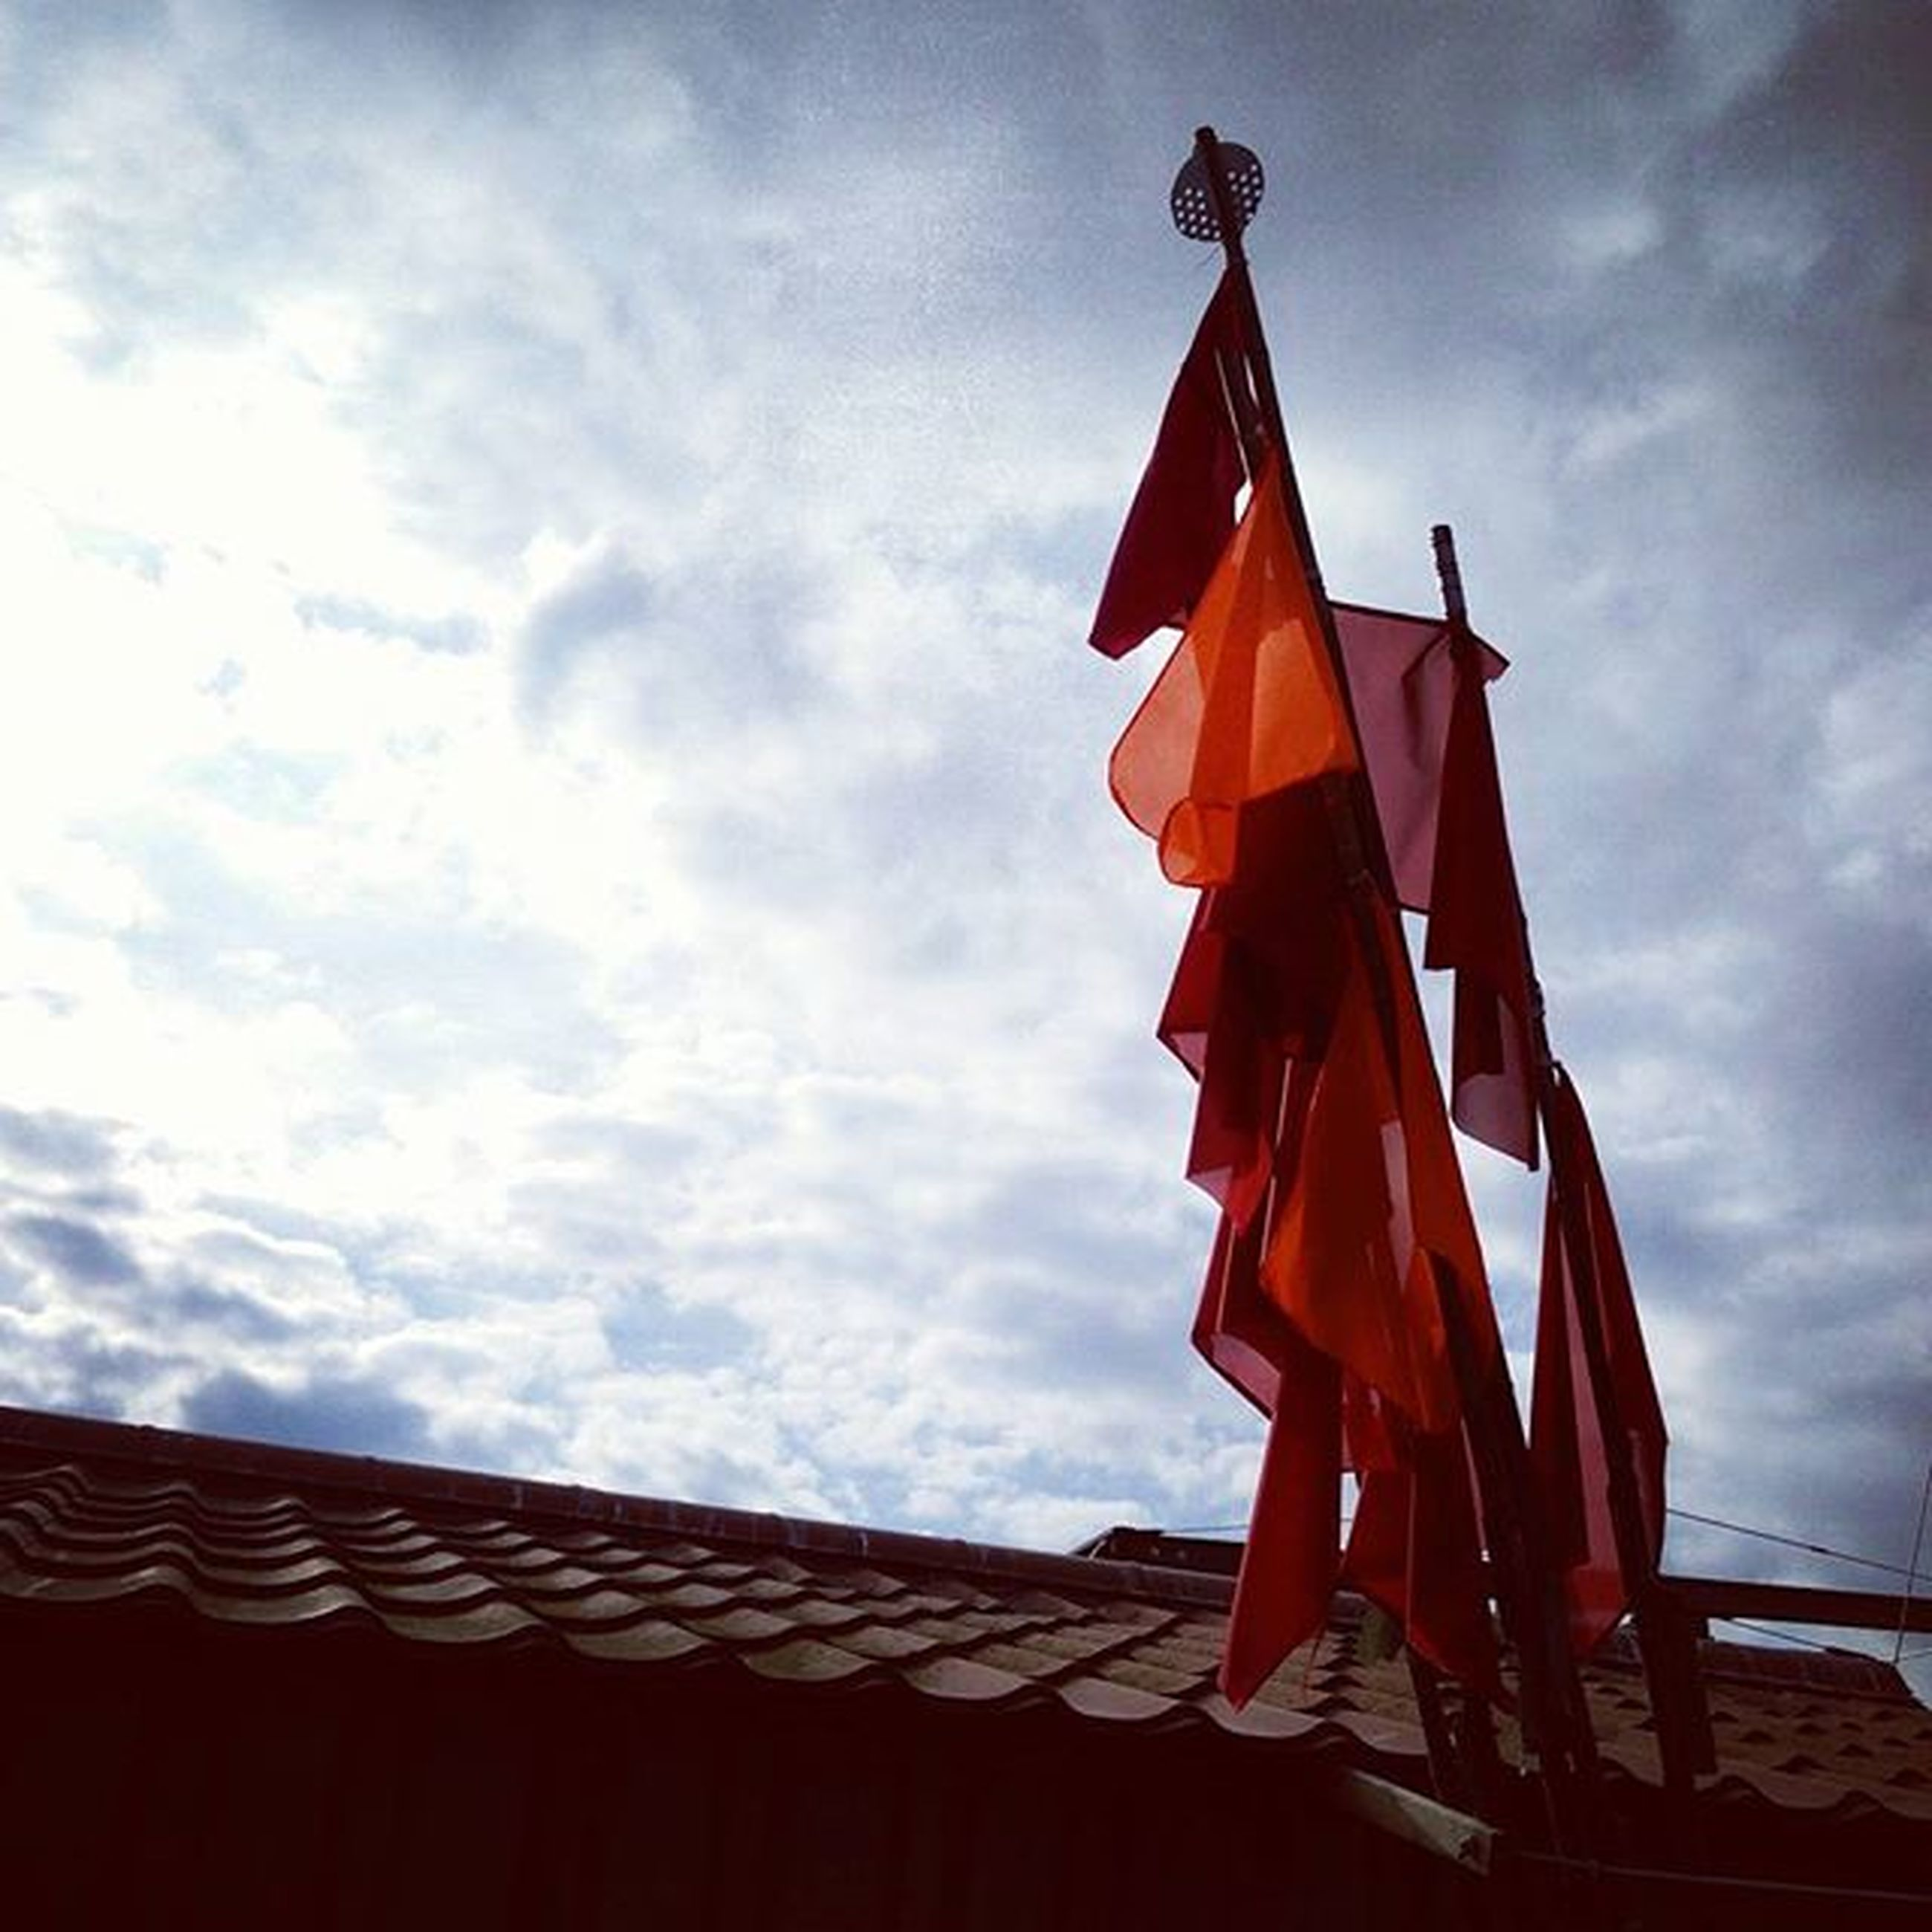 sky, low angle view, cloud - sky, flag, cloud, cloudy, patriotism, red, built structure, identity, national flag, architecture, protection, building exterior, day, outdoors, wind, safety, religion, high section